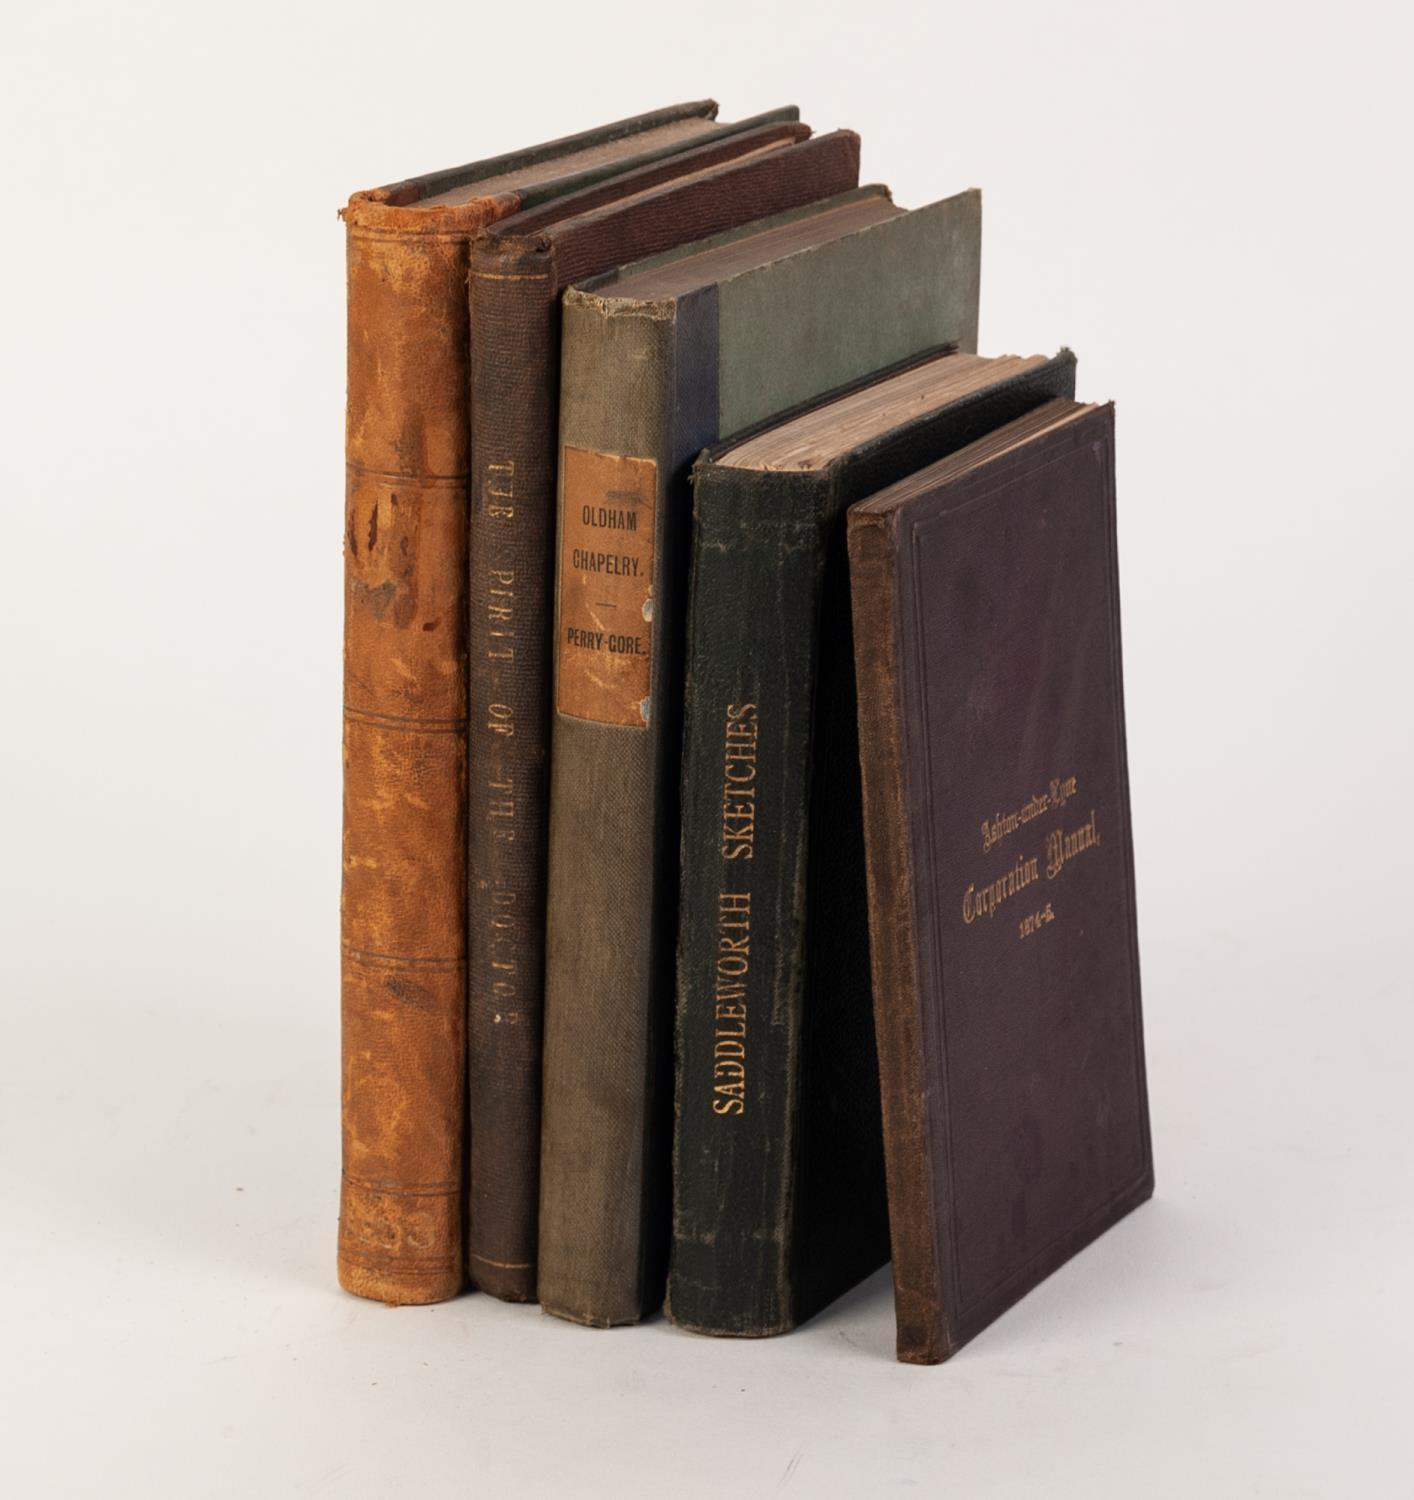 Lot 49 - TOPOGRAPHY, LOCAL HISTORY- The Spirit of The Doctor, comprising of many interesting poems selected